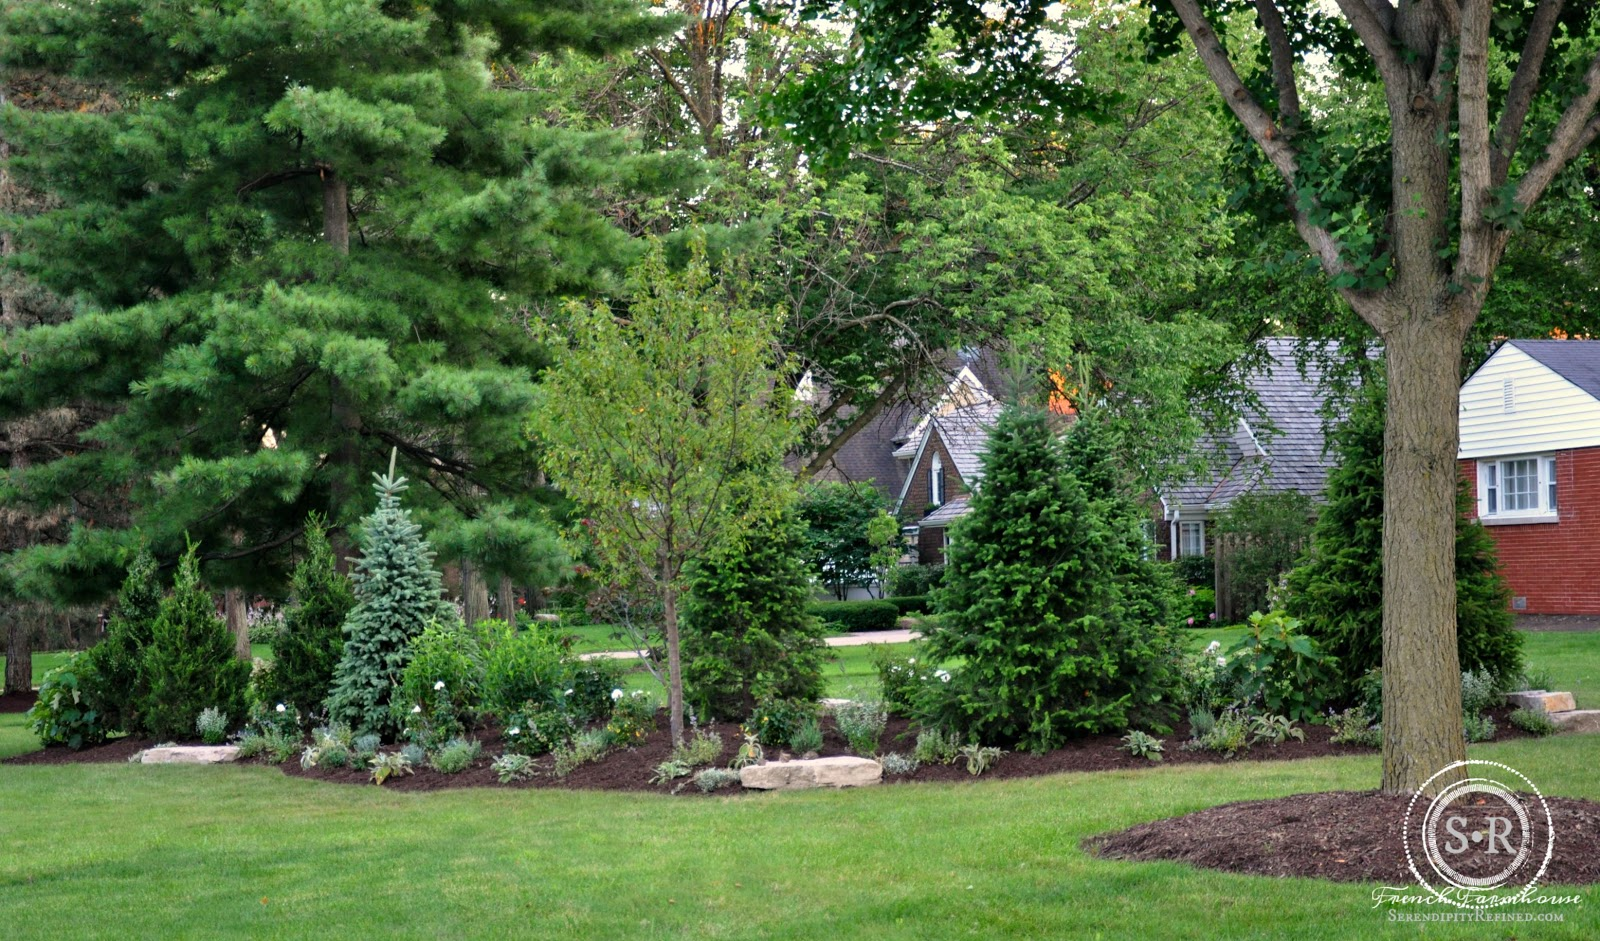 Serendipity refined blog how to landscape a corner lot for Creating a landscape